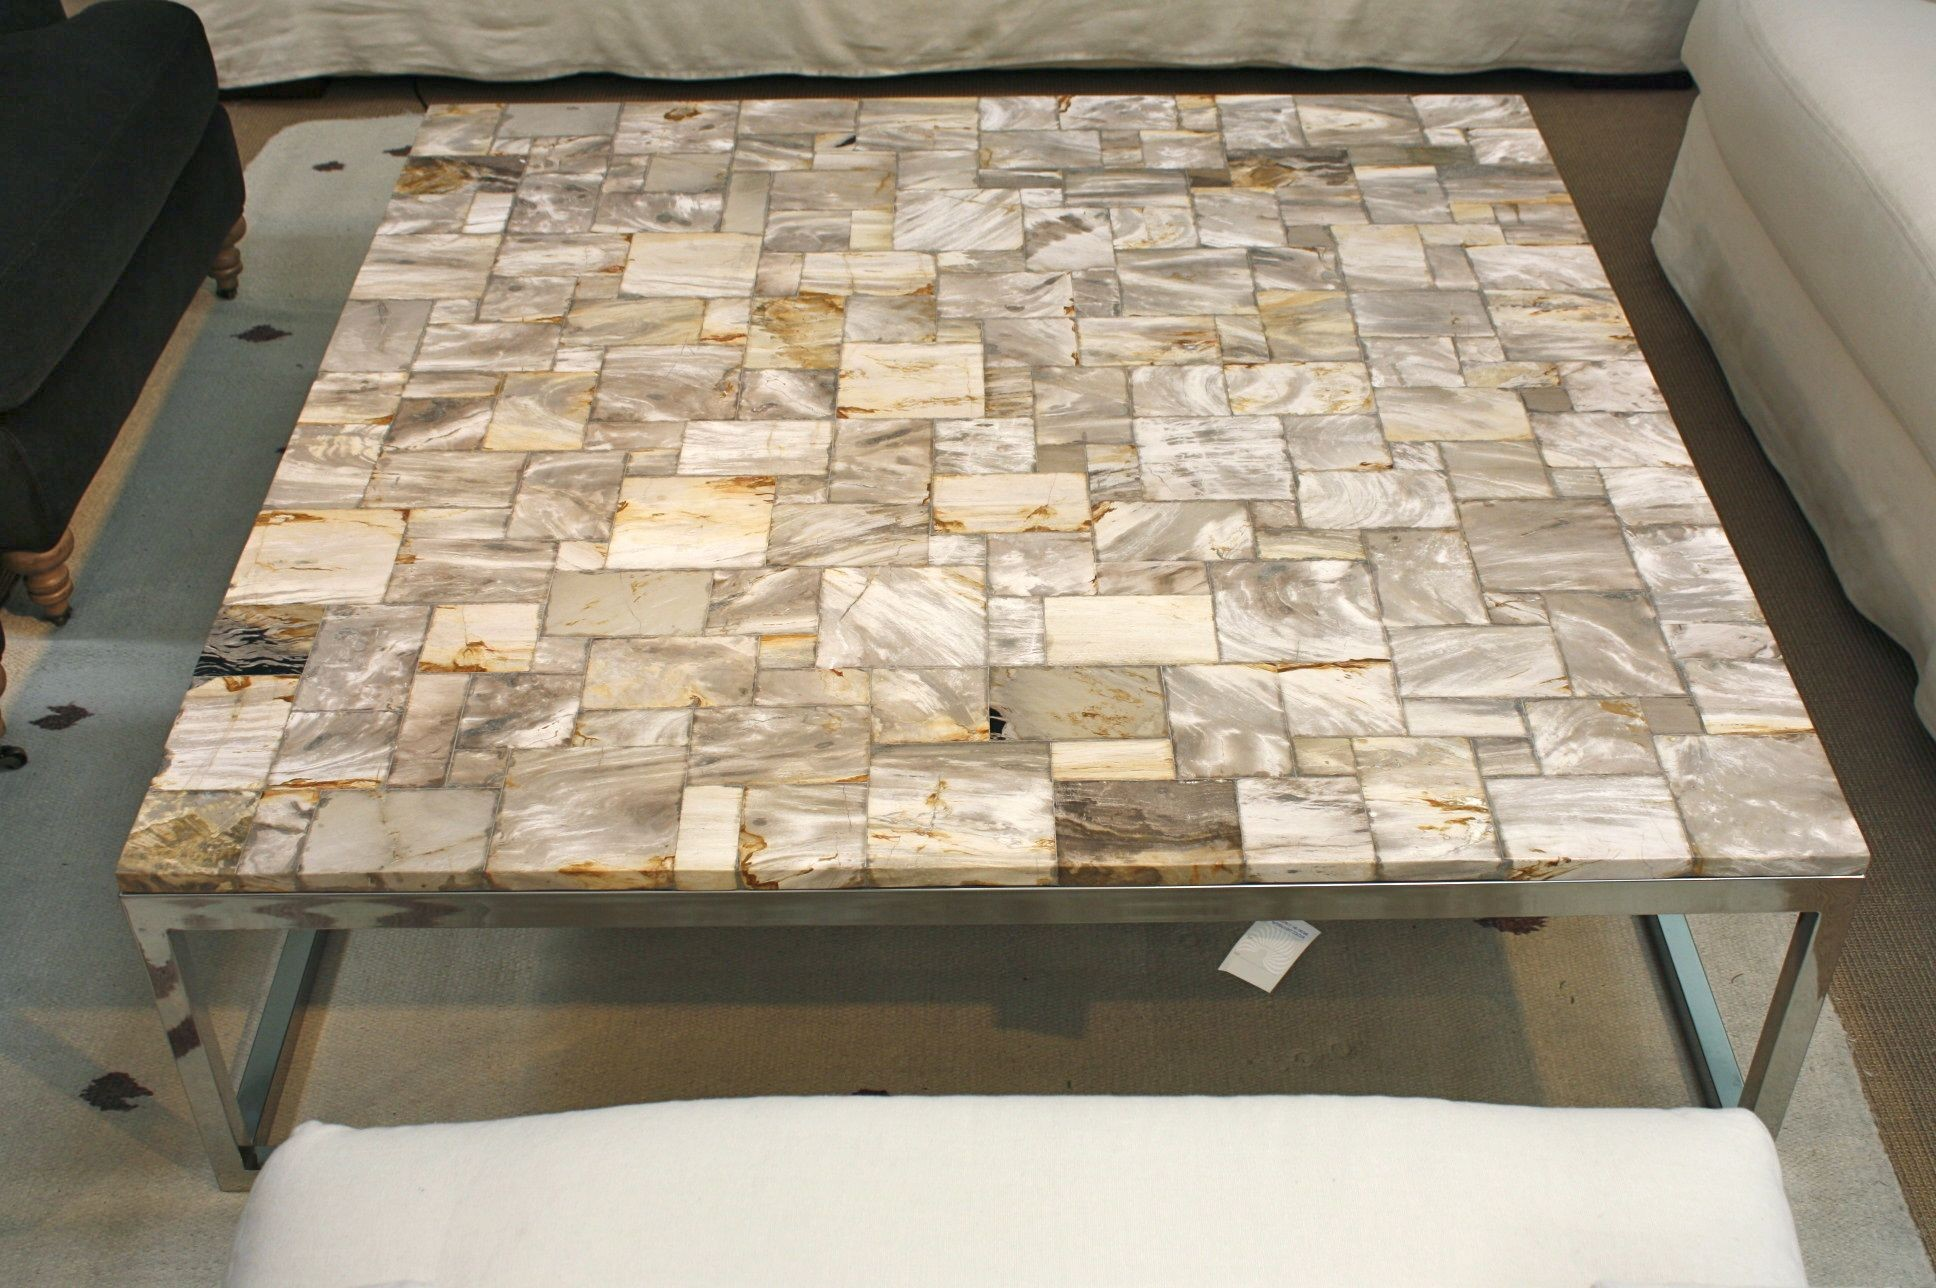 Petrified Wood Coffee Table Square : squarepetrifiedwoodtable from www.jalanmiami.com size 1936 x 1288 jpeg 515kB